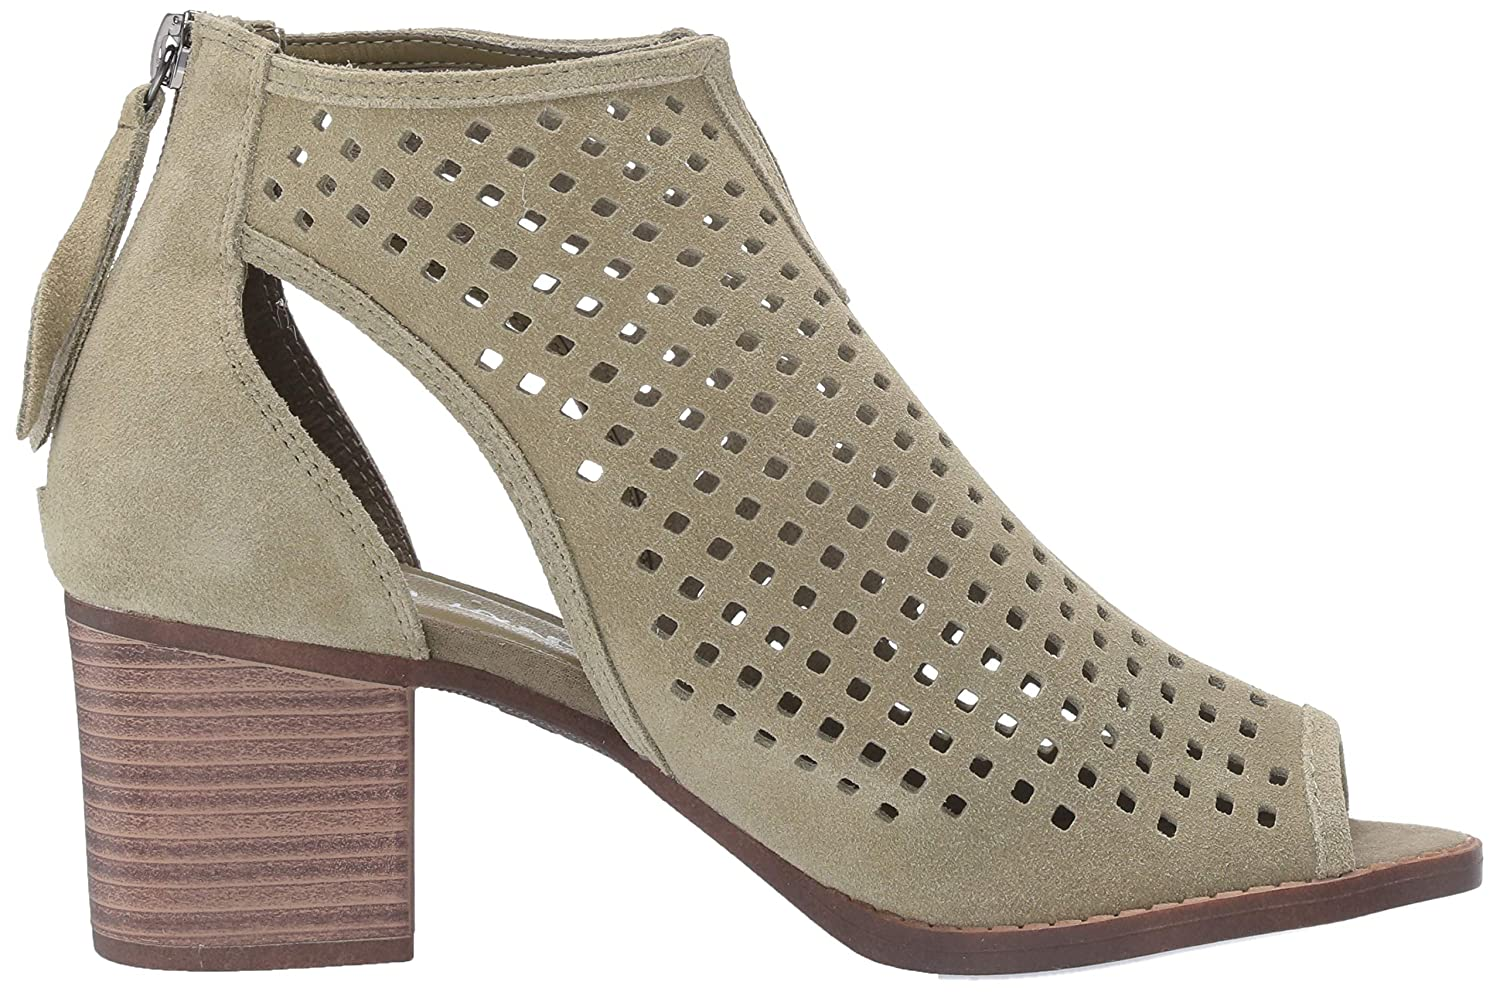 Dirty Laundry Womens Tessa Ankle Boot